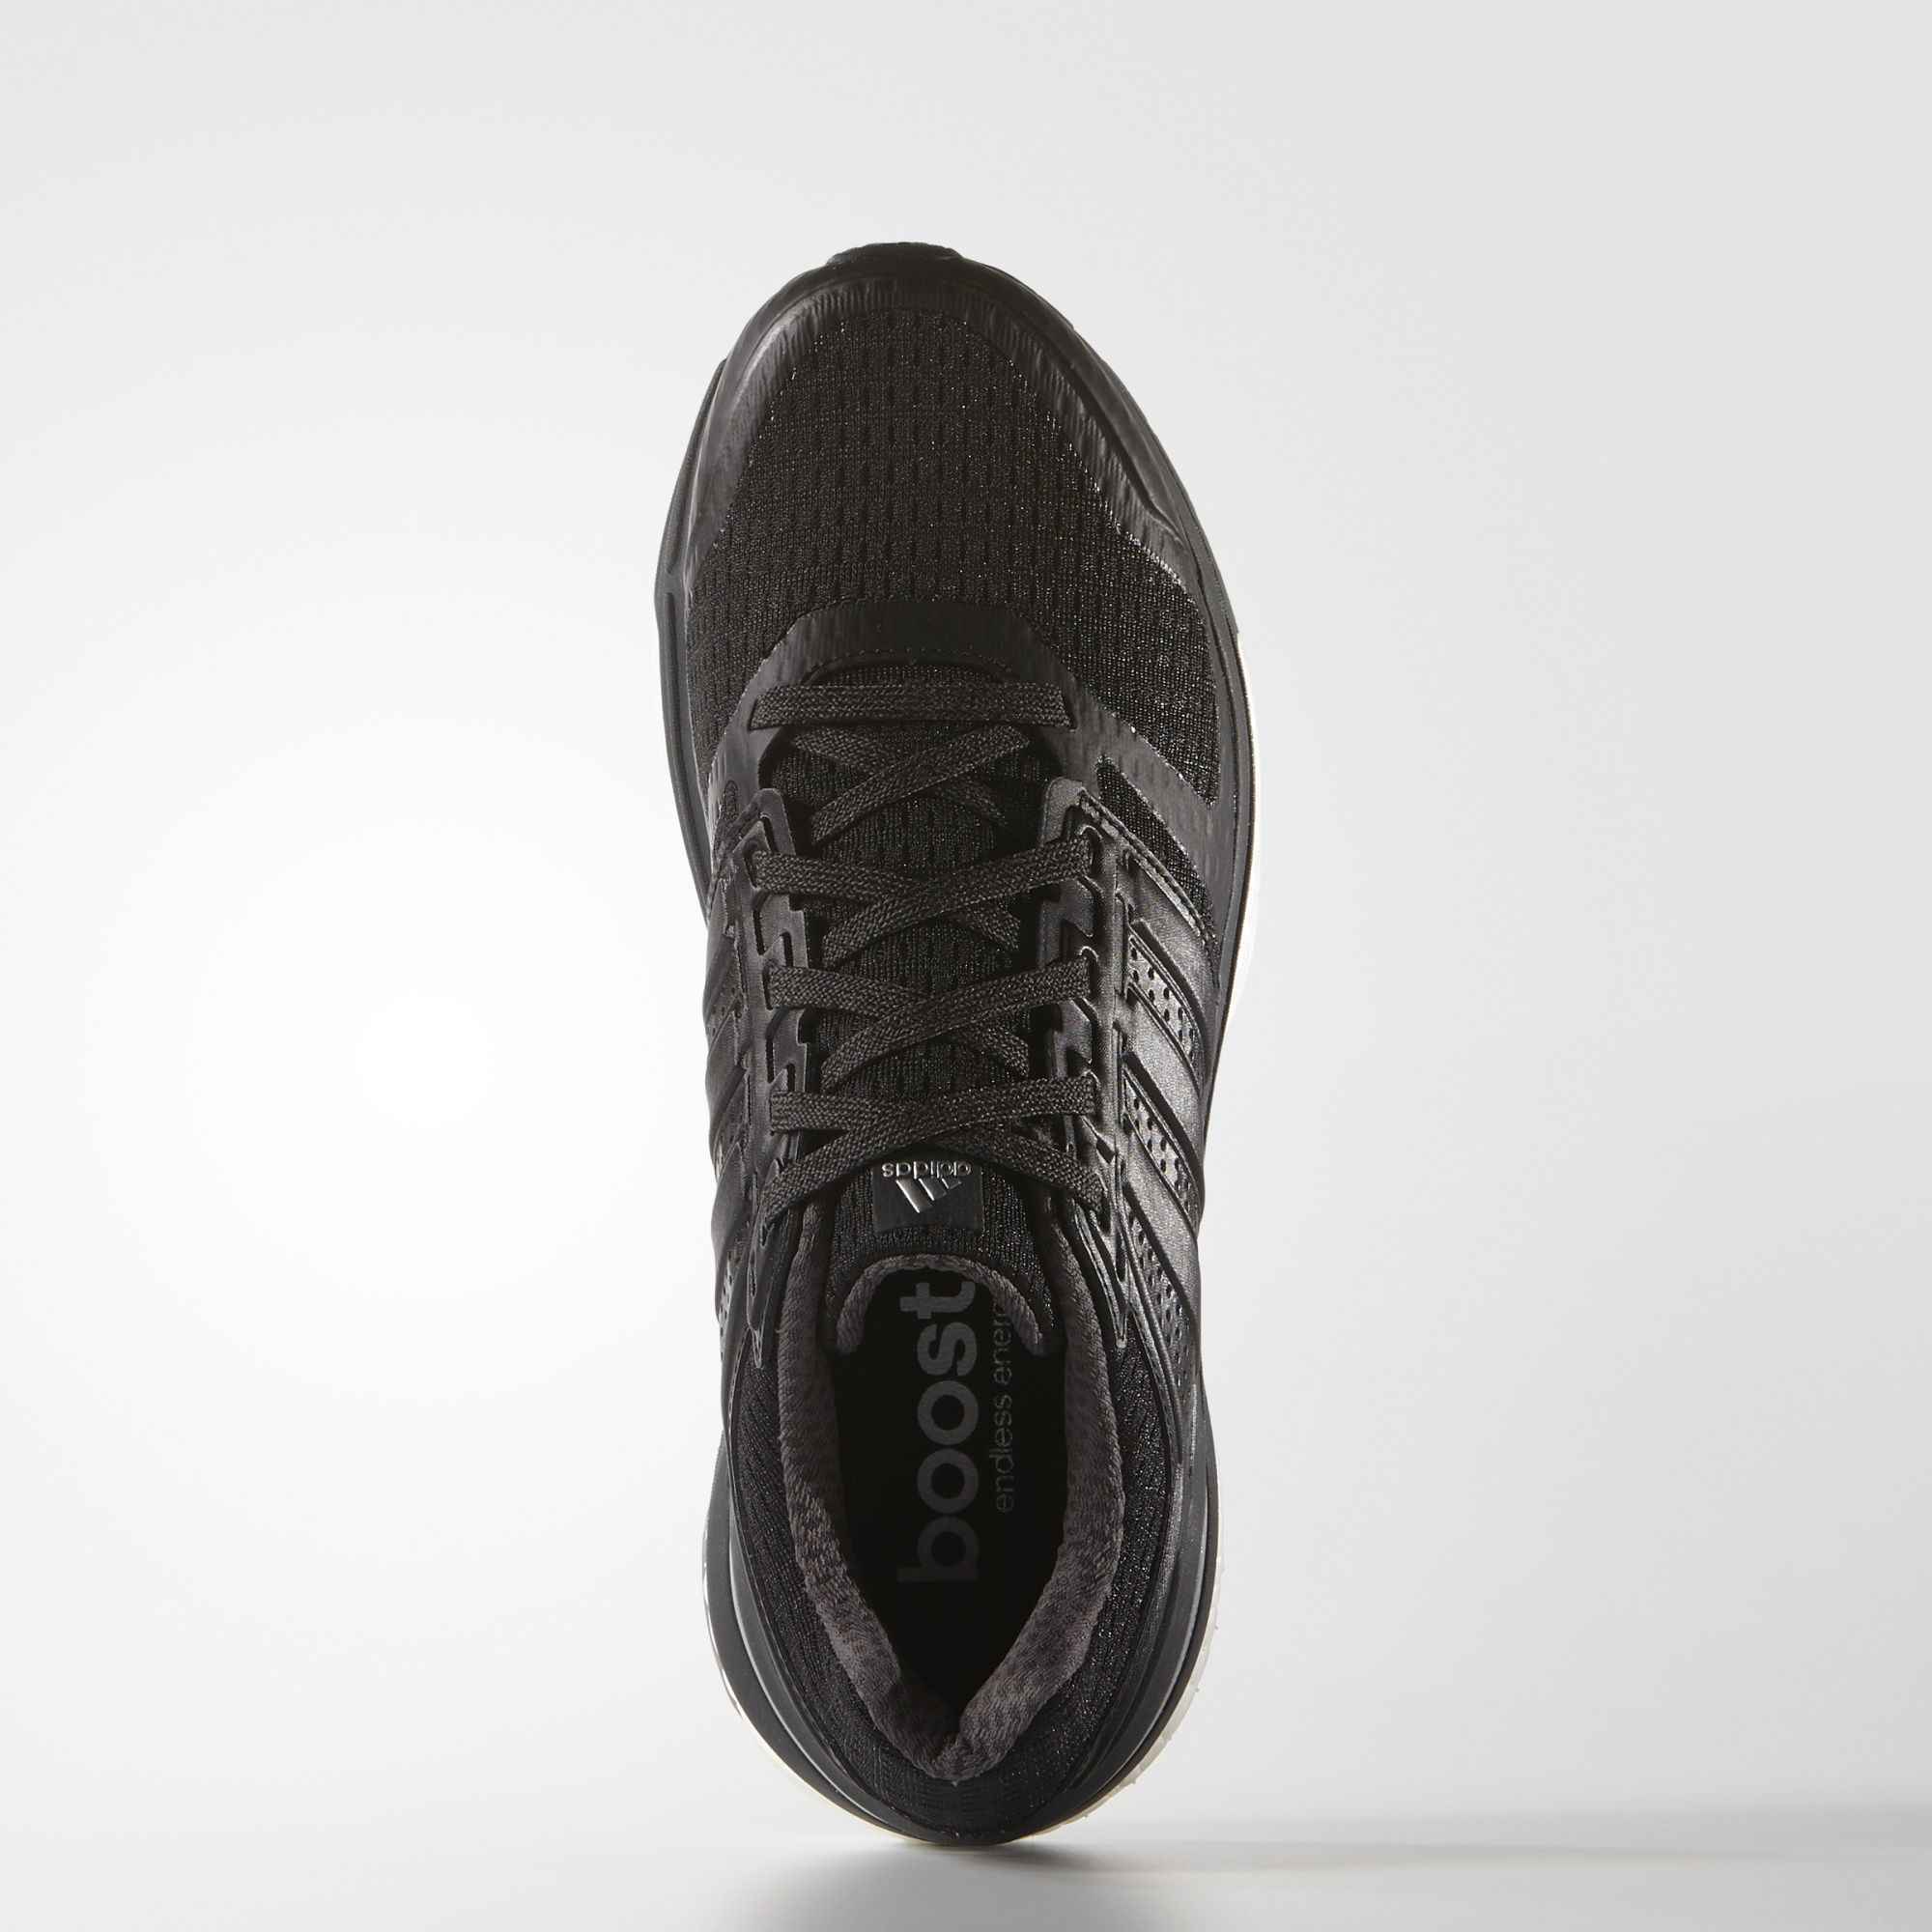 adidas - Supernova Sequence Boost 8 Shoes